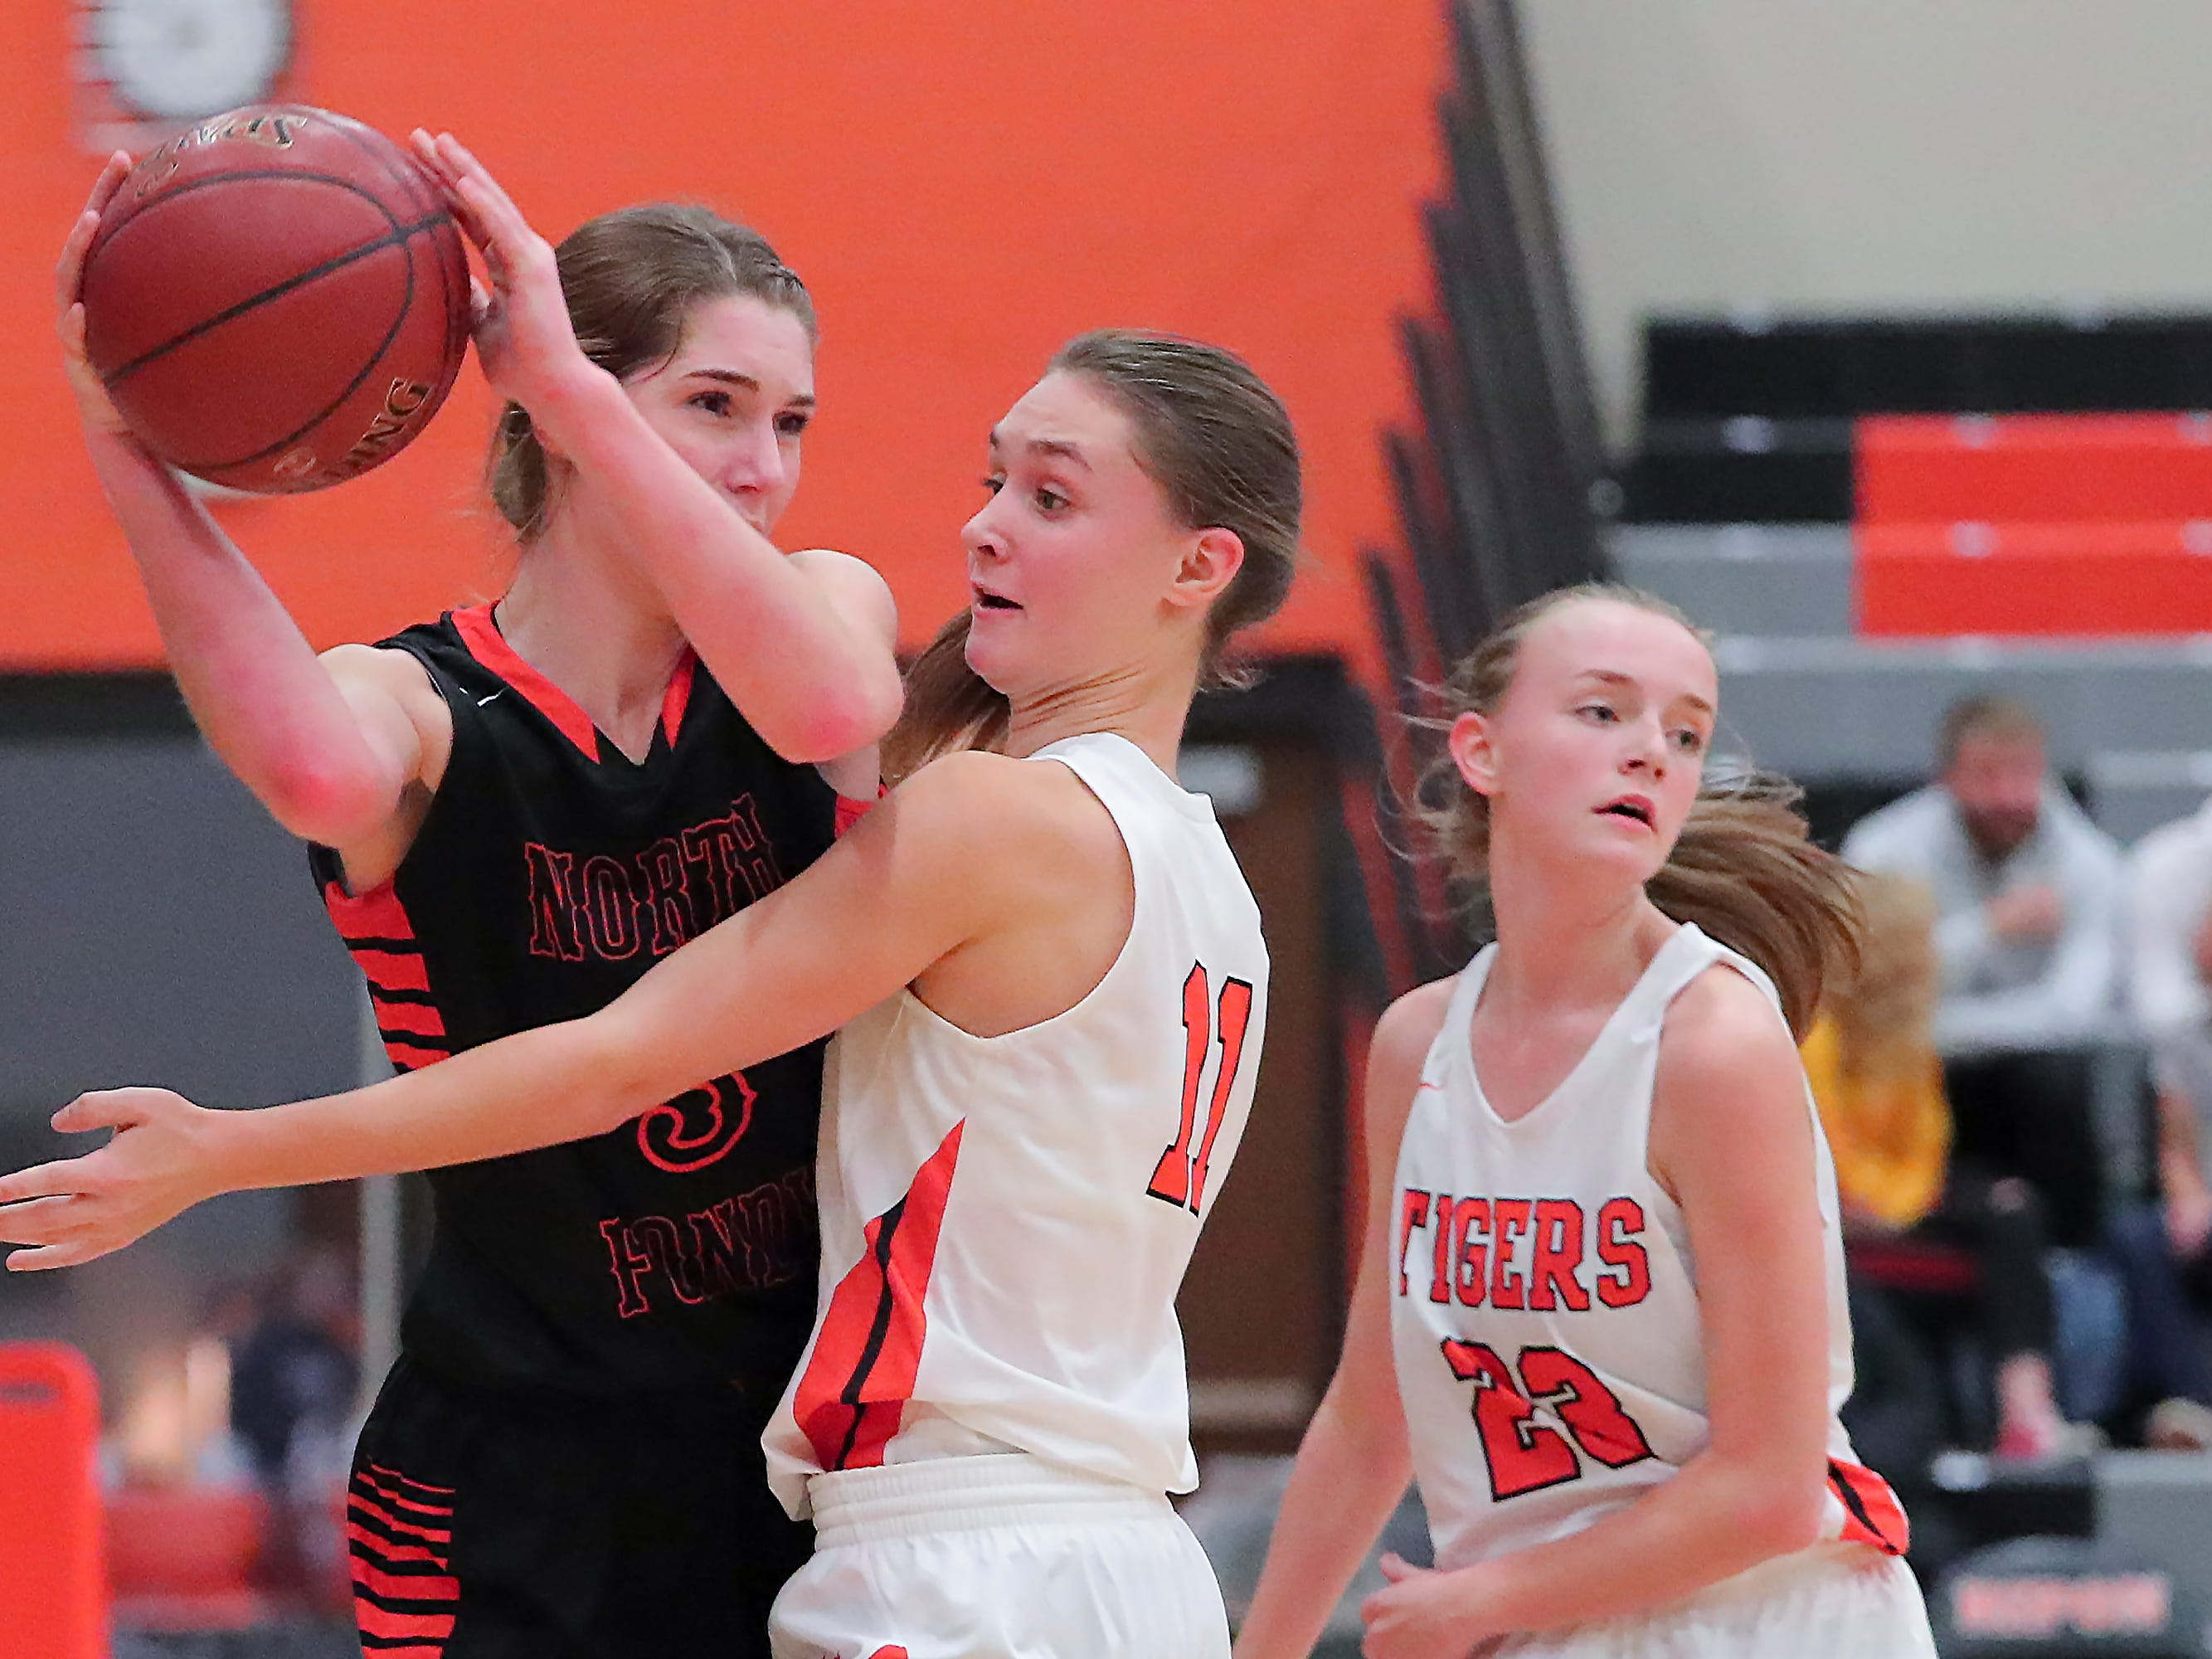 Rebecca Kingsland (3) of North Fond du Lac tries to get the ball past Lexi Miller (11) of Ripon. The Ripon Tigers hosted the North Fond du Lac Orioles in a non-conference basketball game Thursday evening, November 15, 2018.